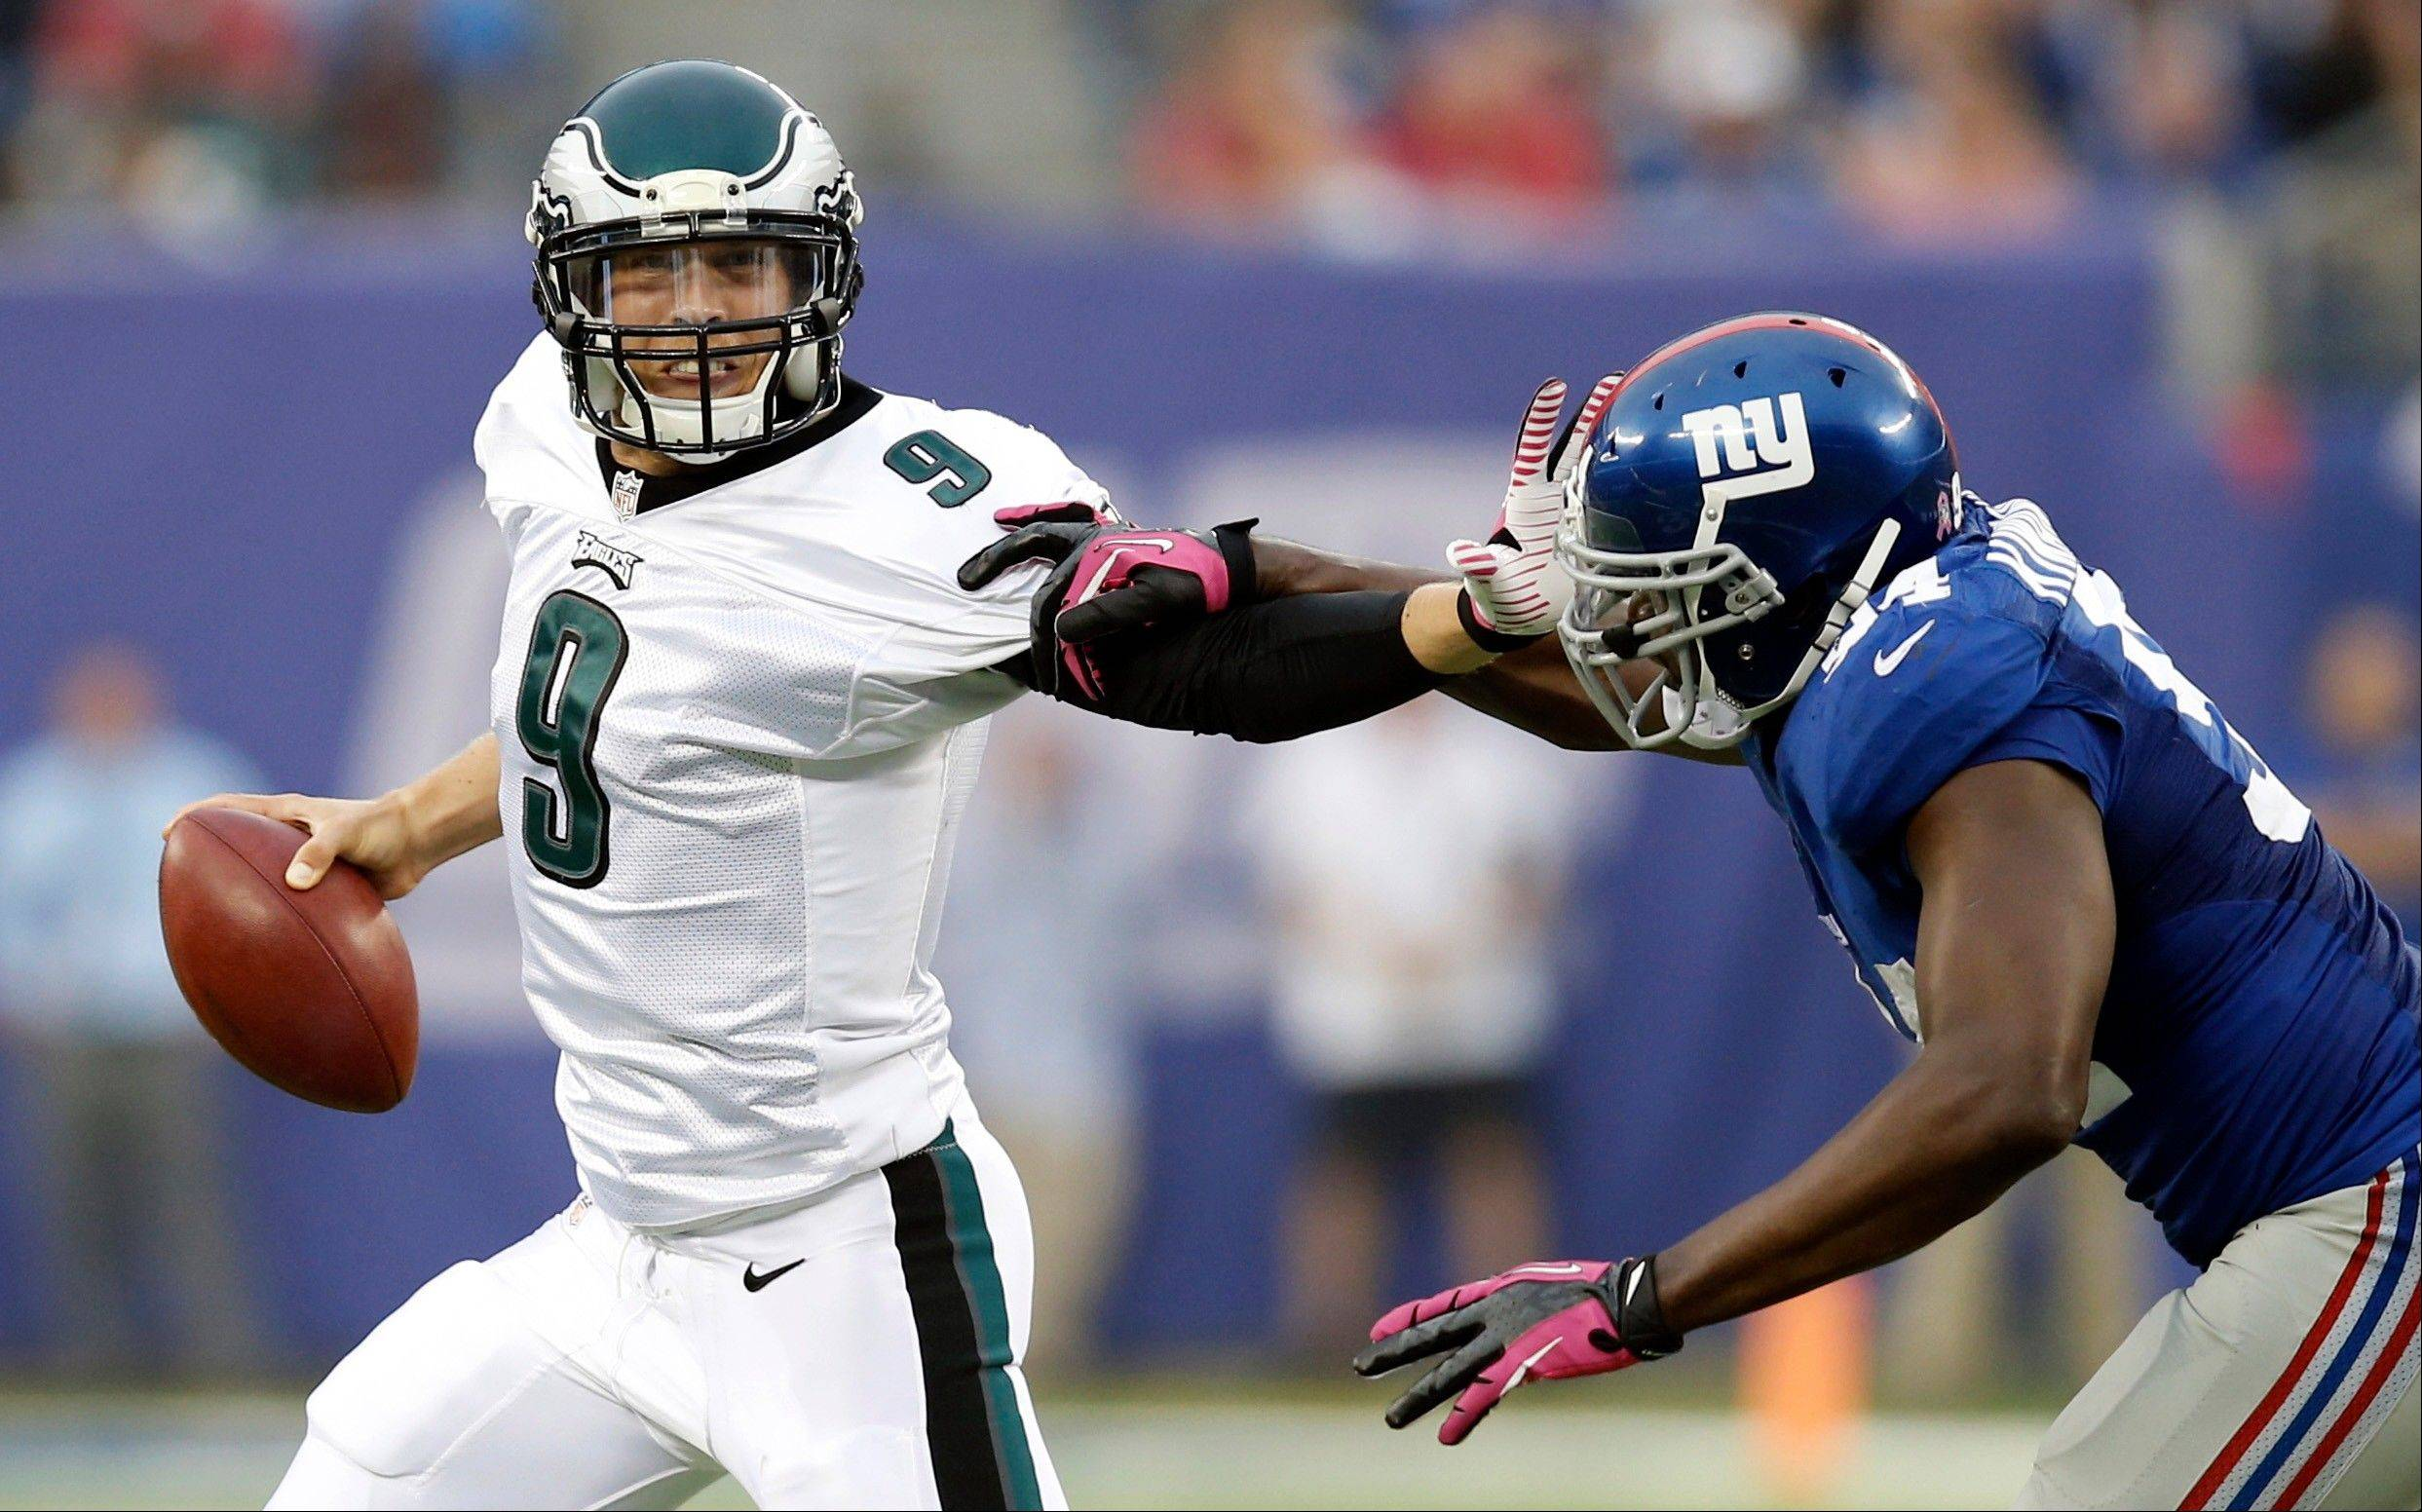 Philadelphia Eagles� Nick Foles (9) stiff-arms New York Giants� Mathias Kiwanuka (94) during the second half of an NFL football game on Sunday, Oct. 6, 2013, in East Rutherford, N.J.